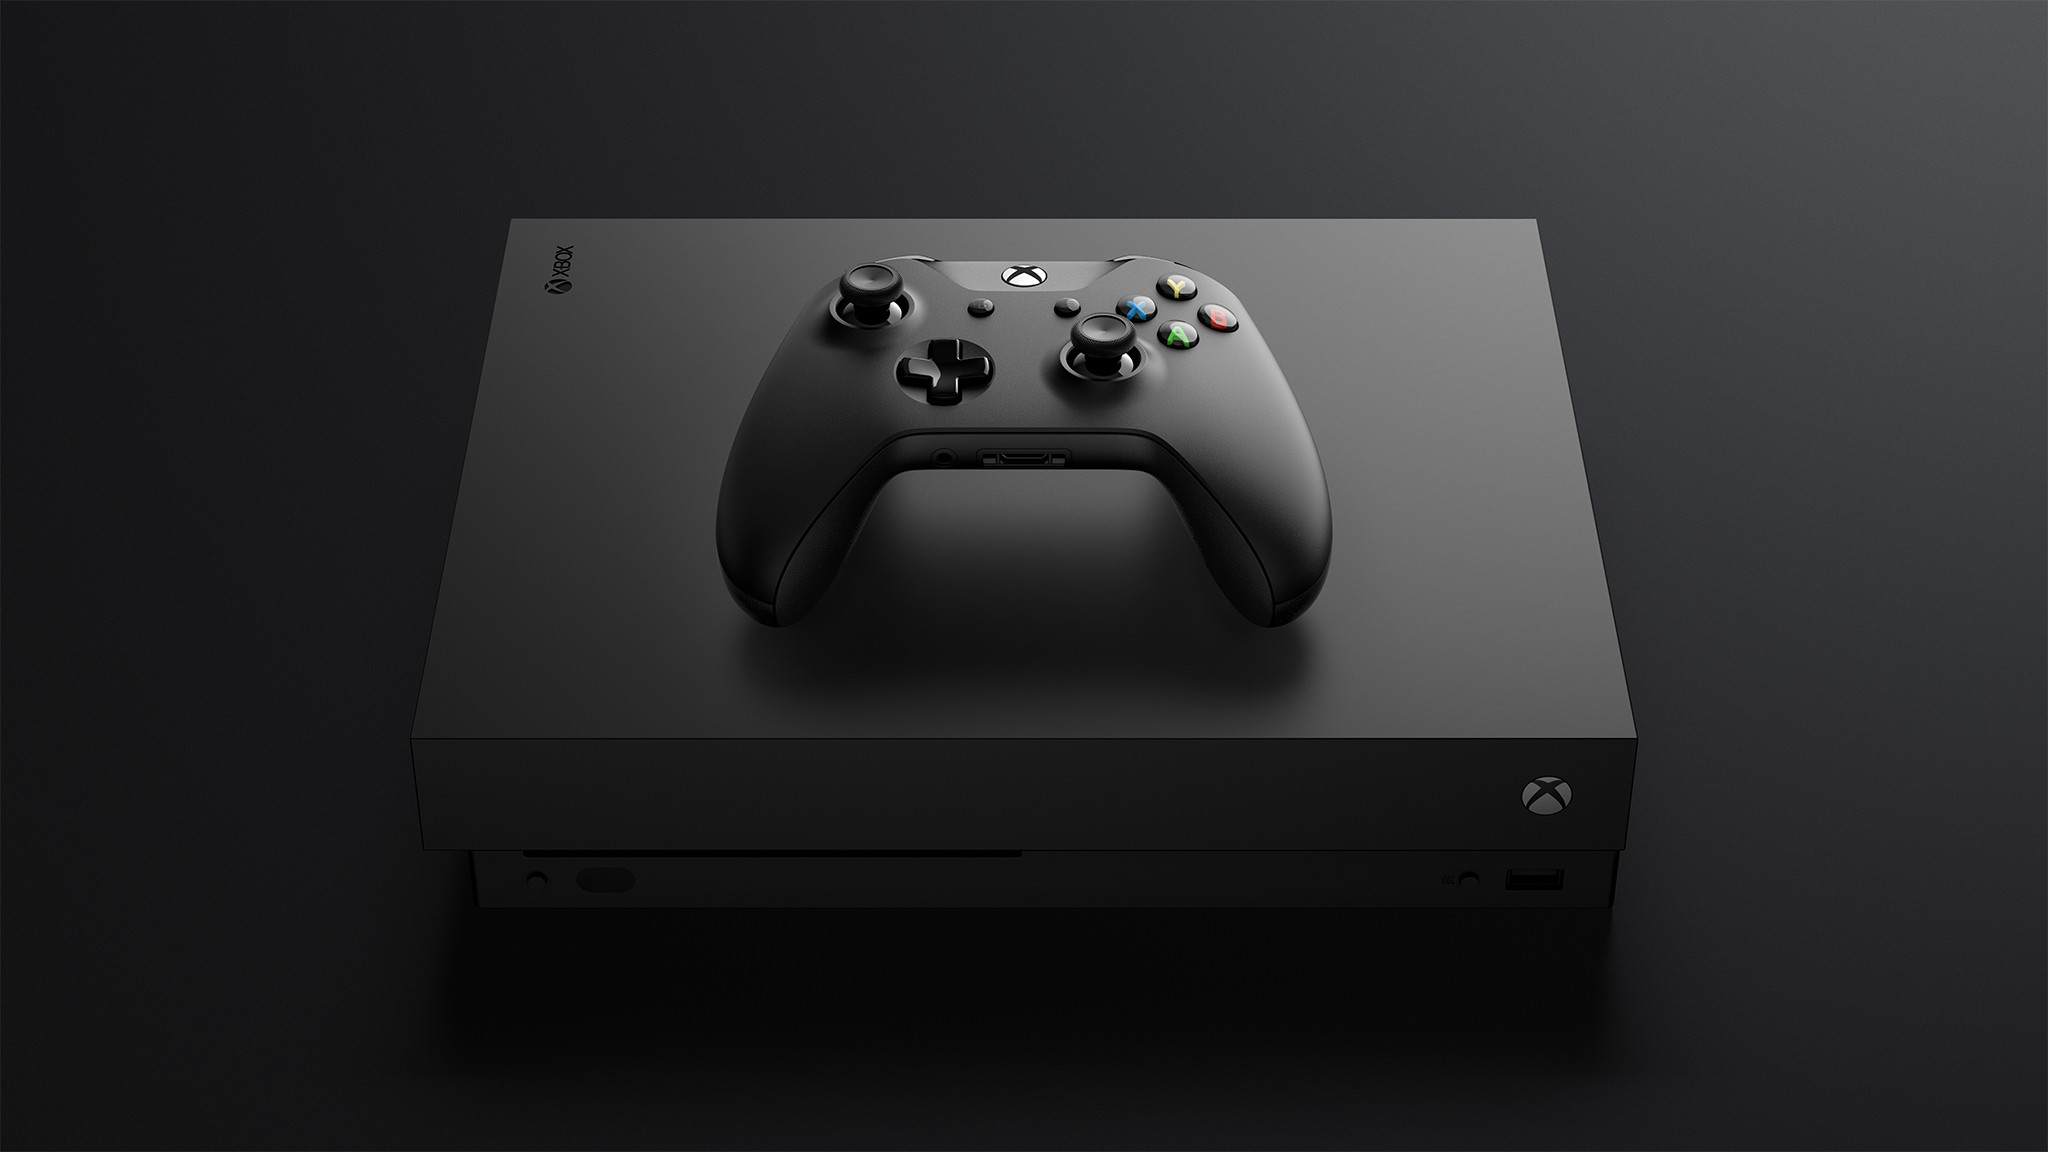 Xbox one wallpaper resolution